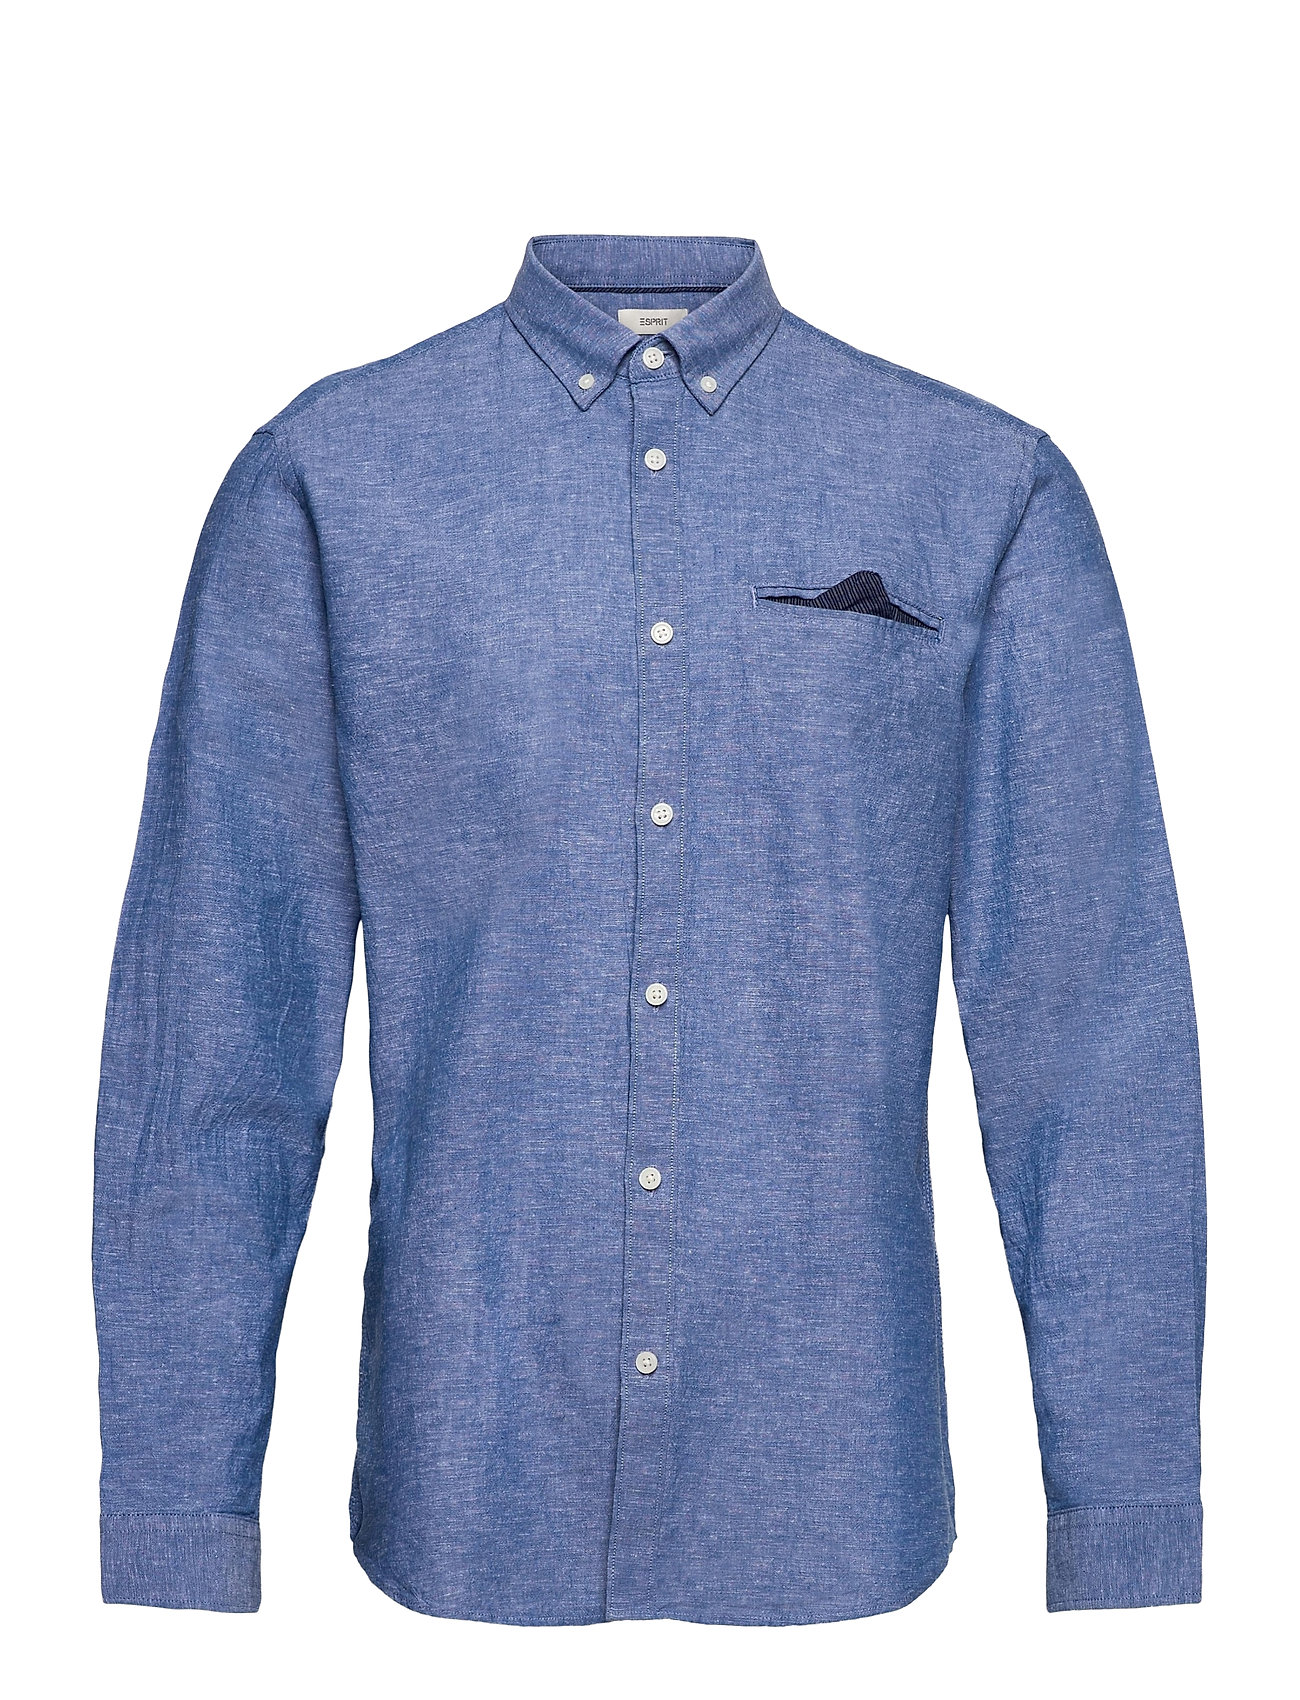 Image of Shirts Woven Skjorte Casual Blå Esprit Casual (3437564935)